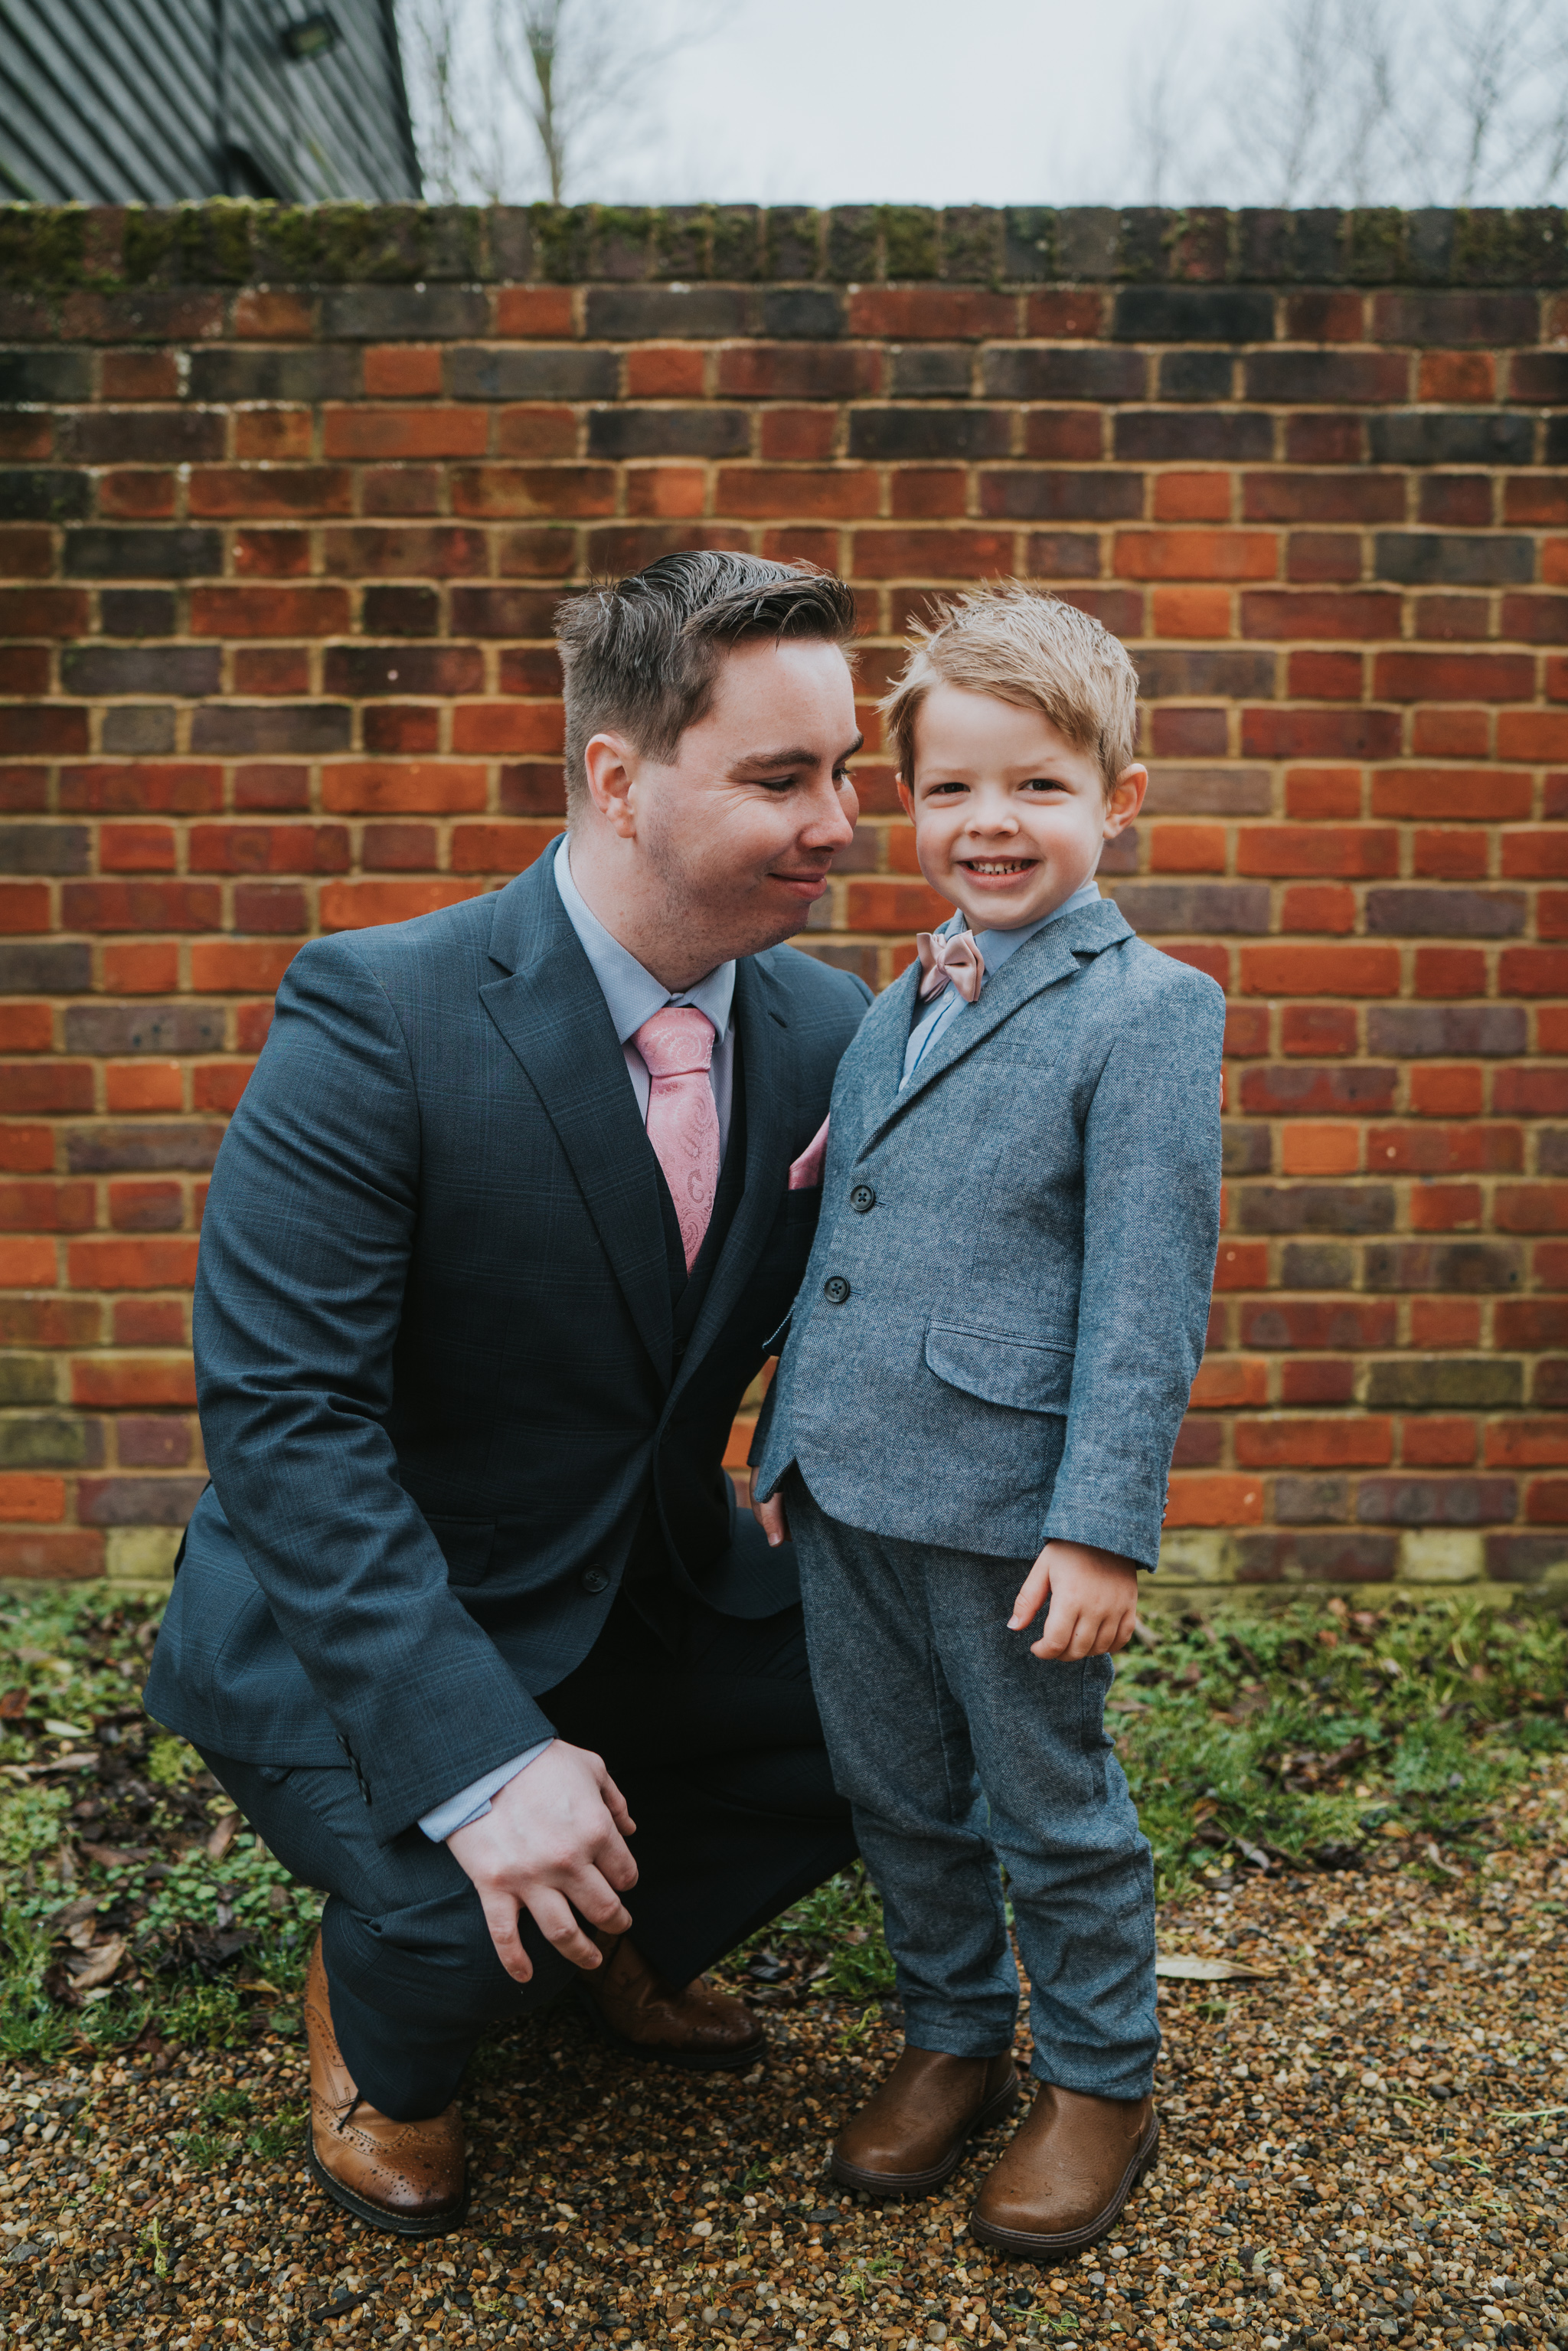 grace-elizabeth-essex-wedding-photographer-rhia-james-family-norfolk-essex-devon-suffolk (8 of 39).jpg